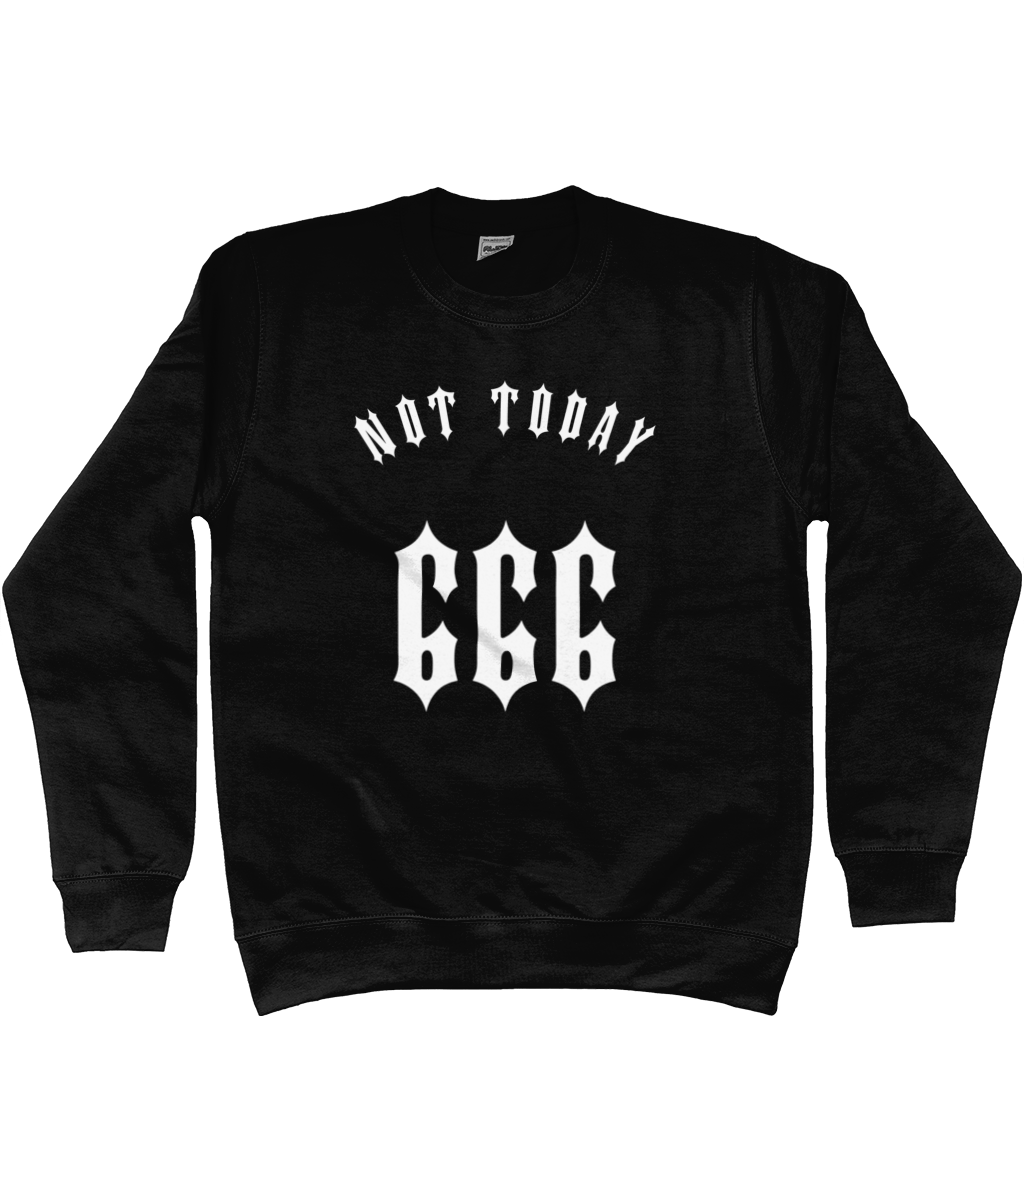 Not Today 666 - Sweatshirt